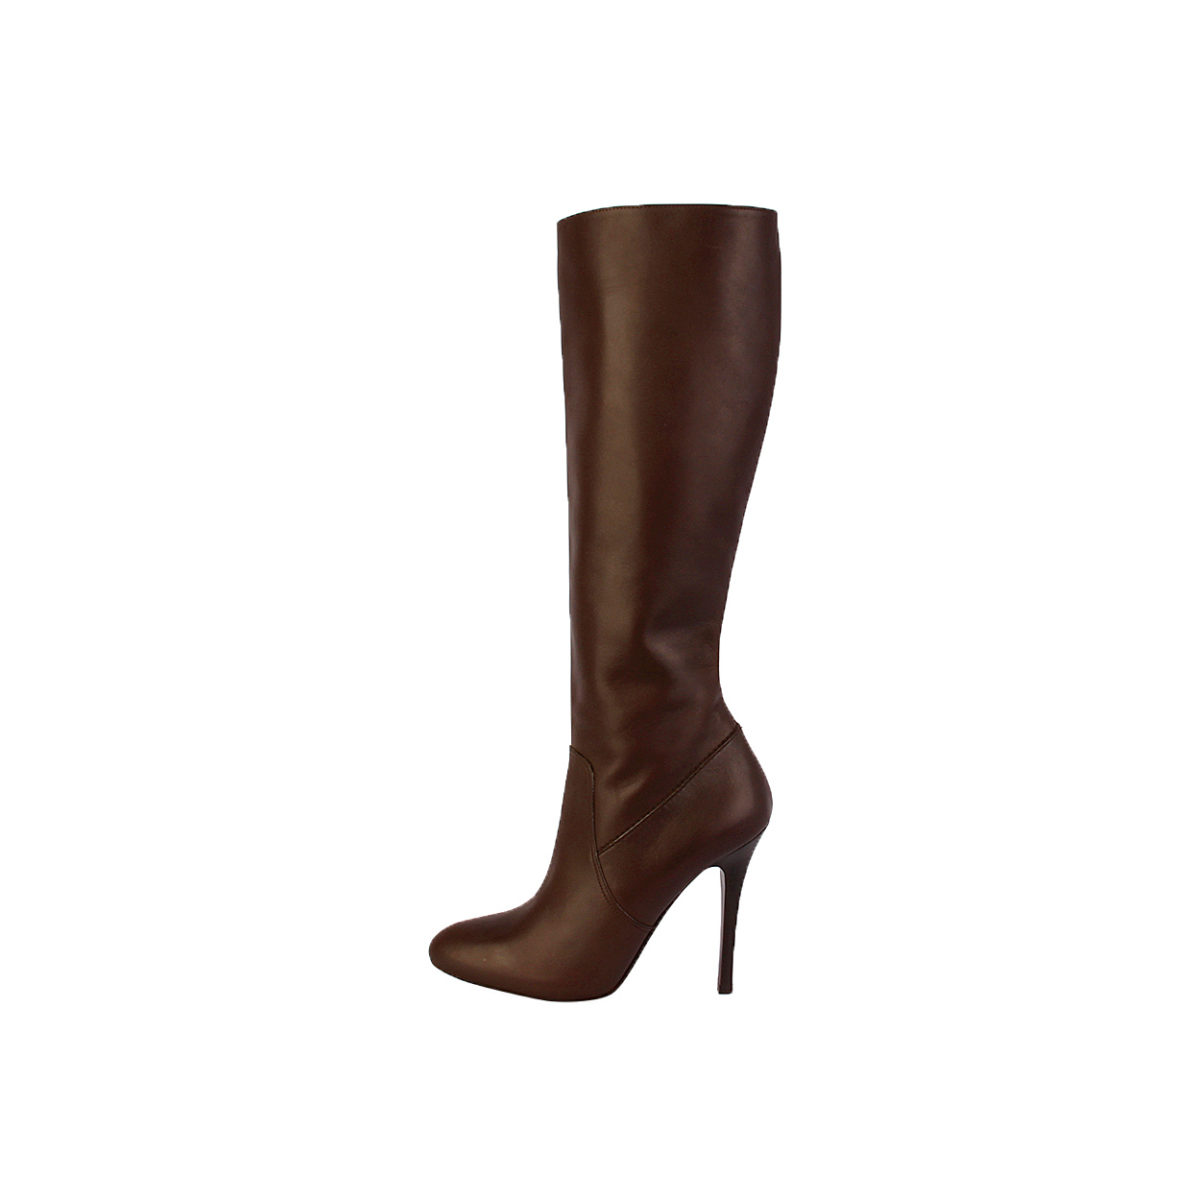 ralph leather stiletto boots brown s 38 5